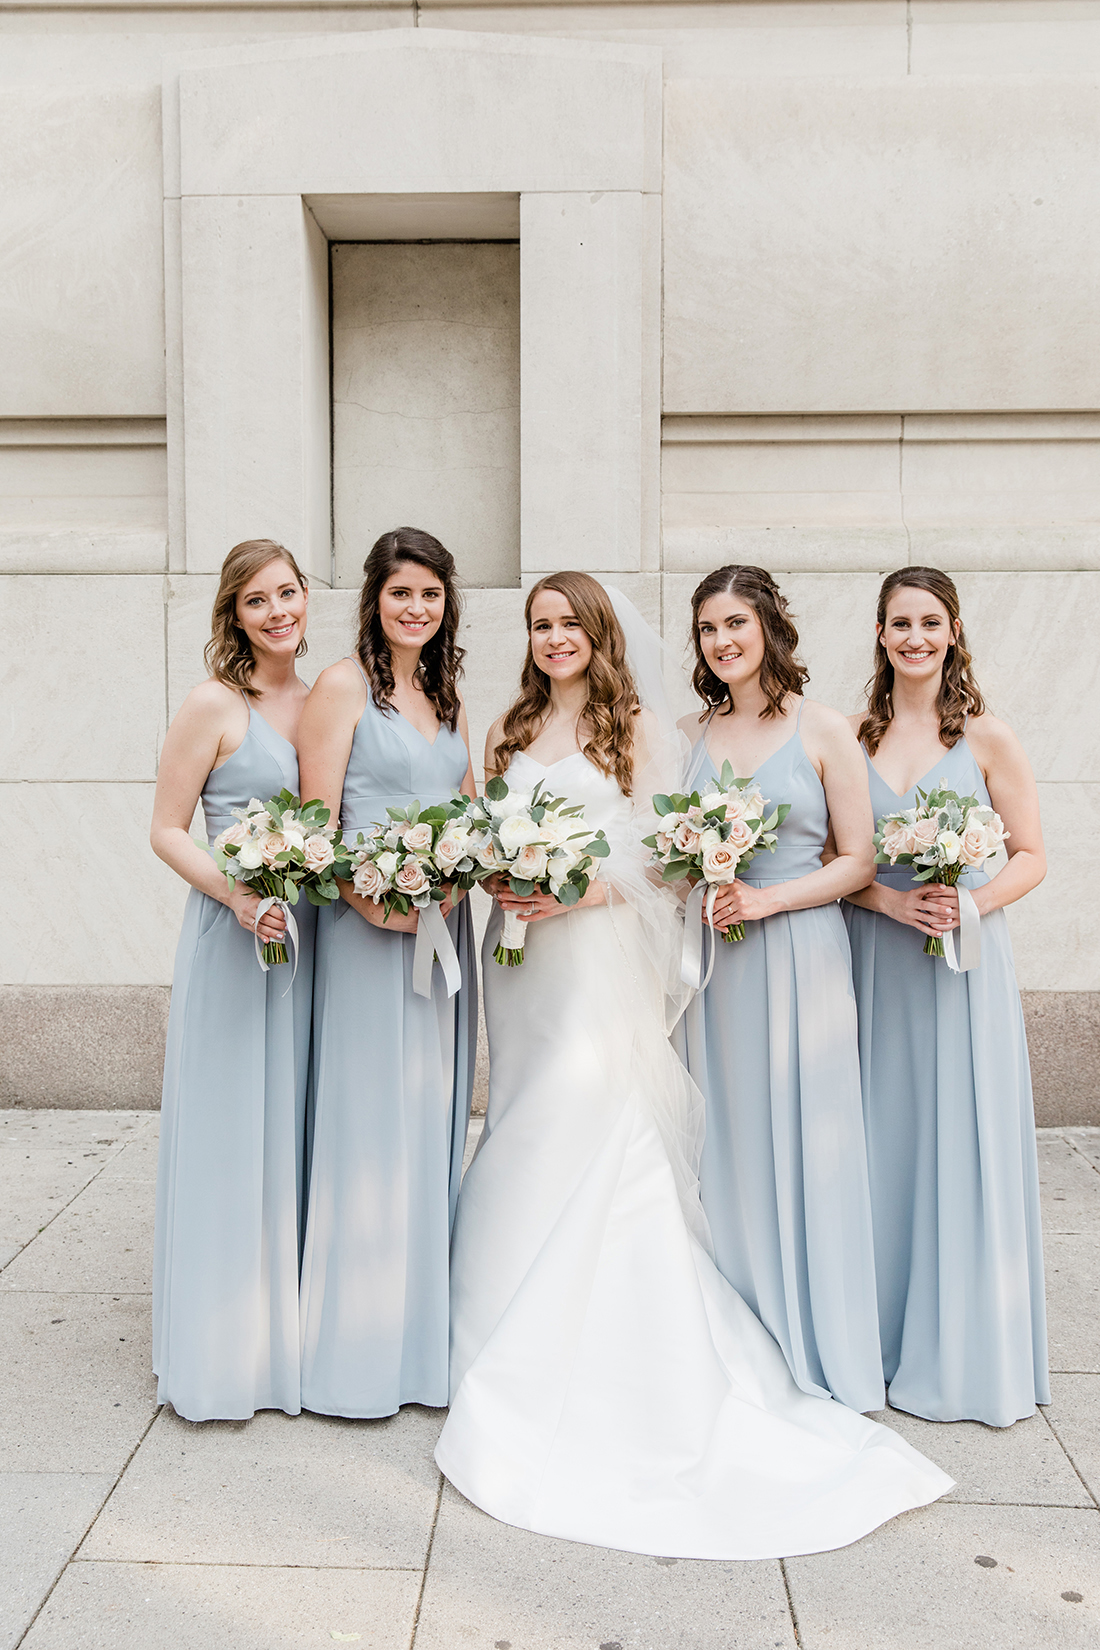 National Museum of Women in the Arts Wedding, DC Event Planner Bright Occasions, Susie Hadeed Photography